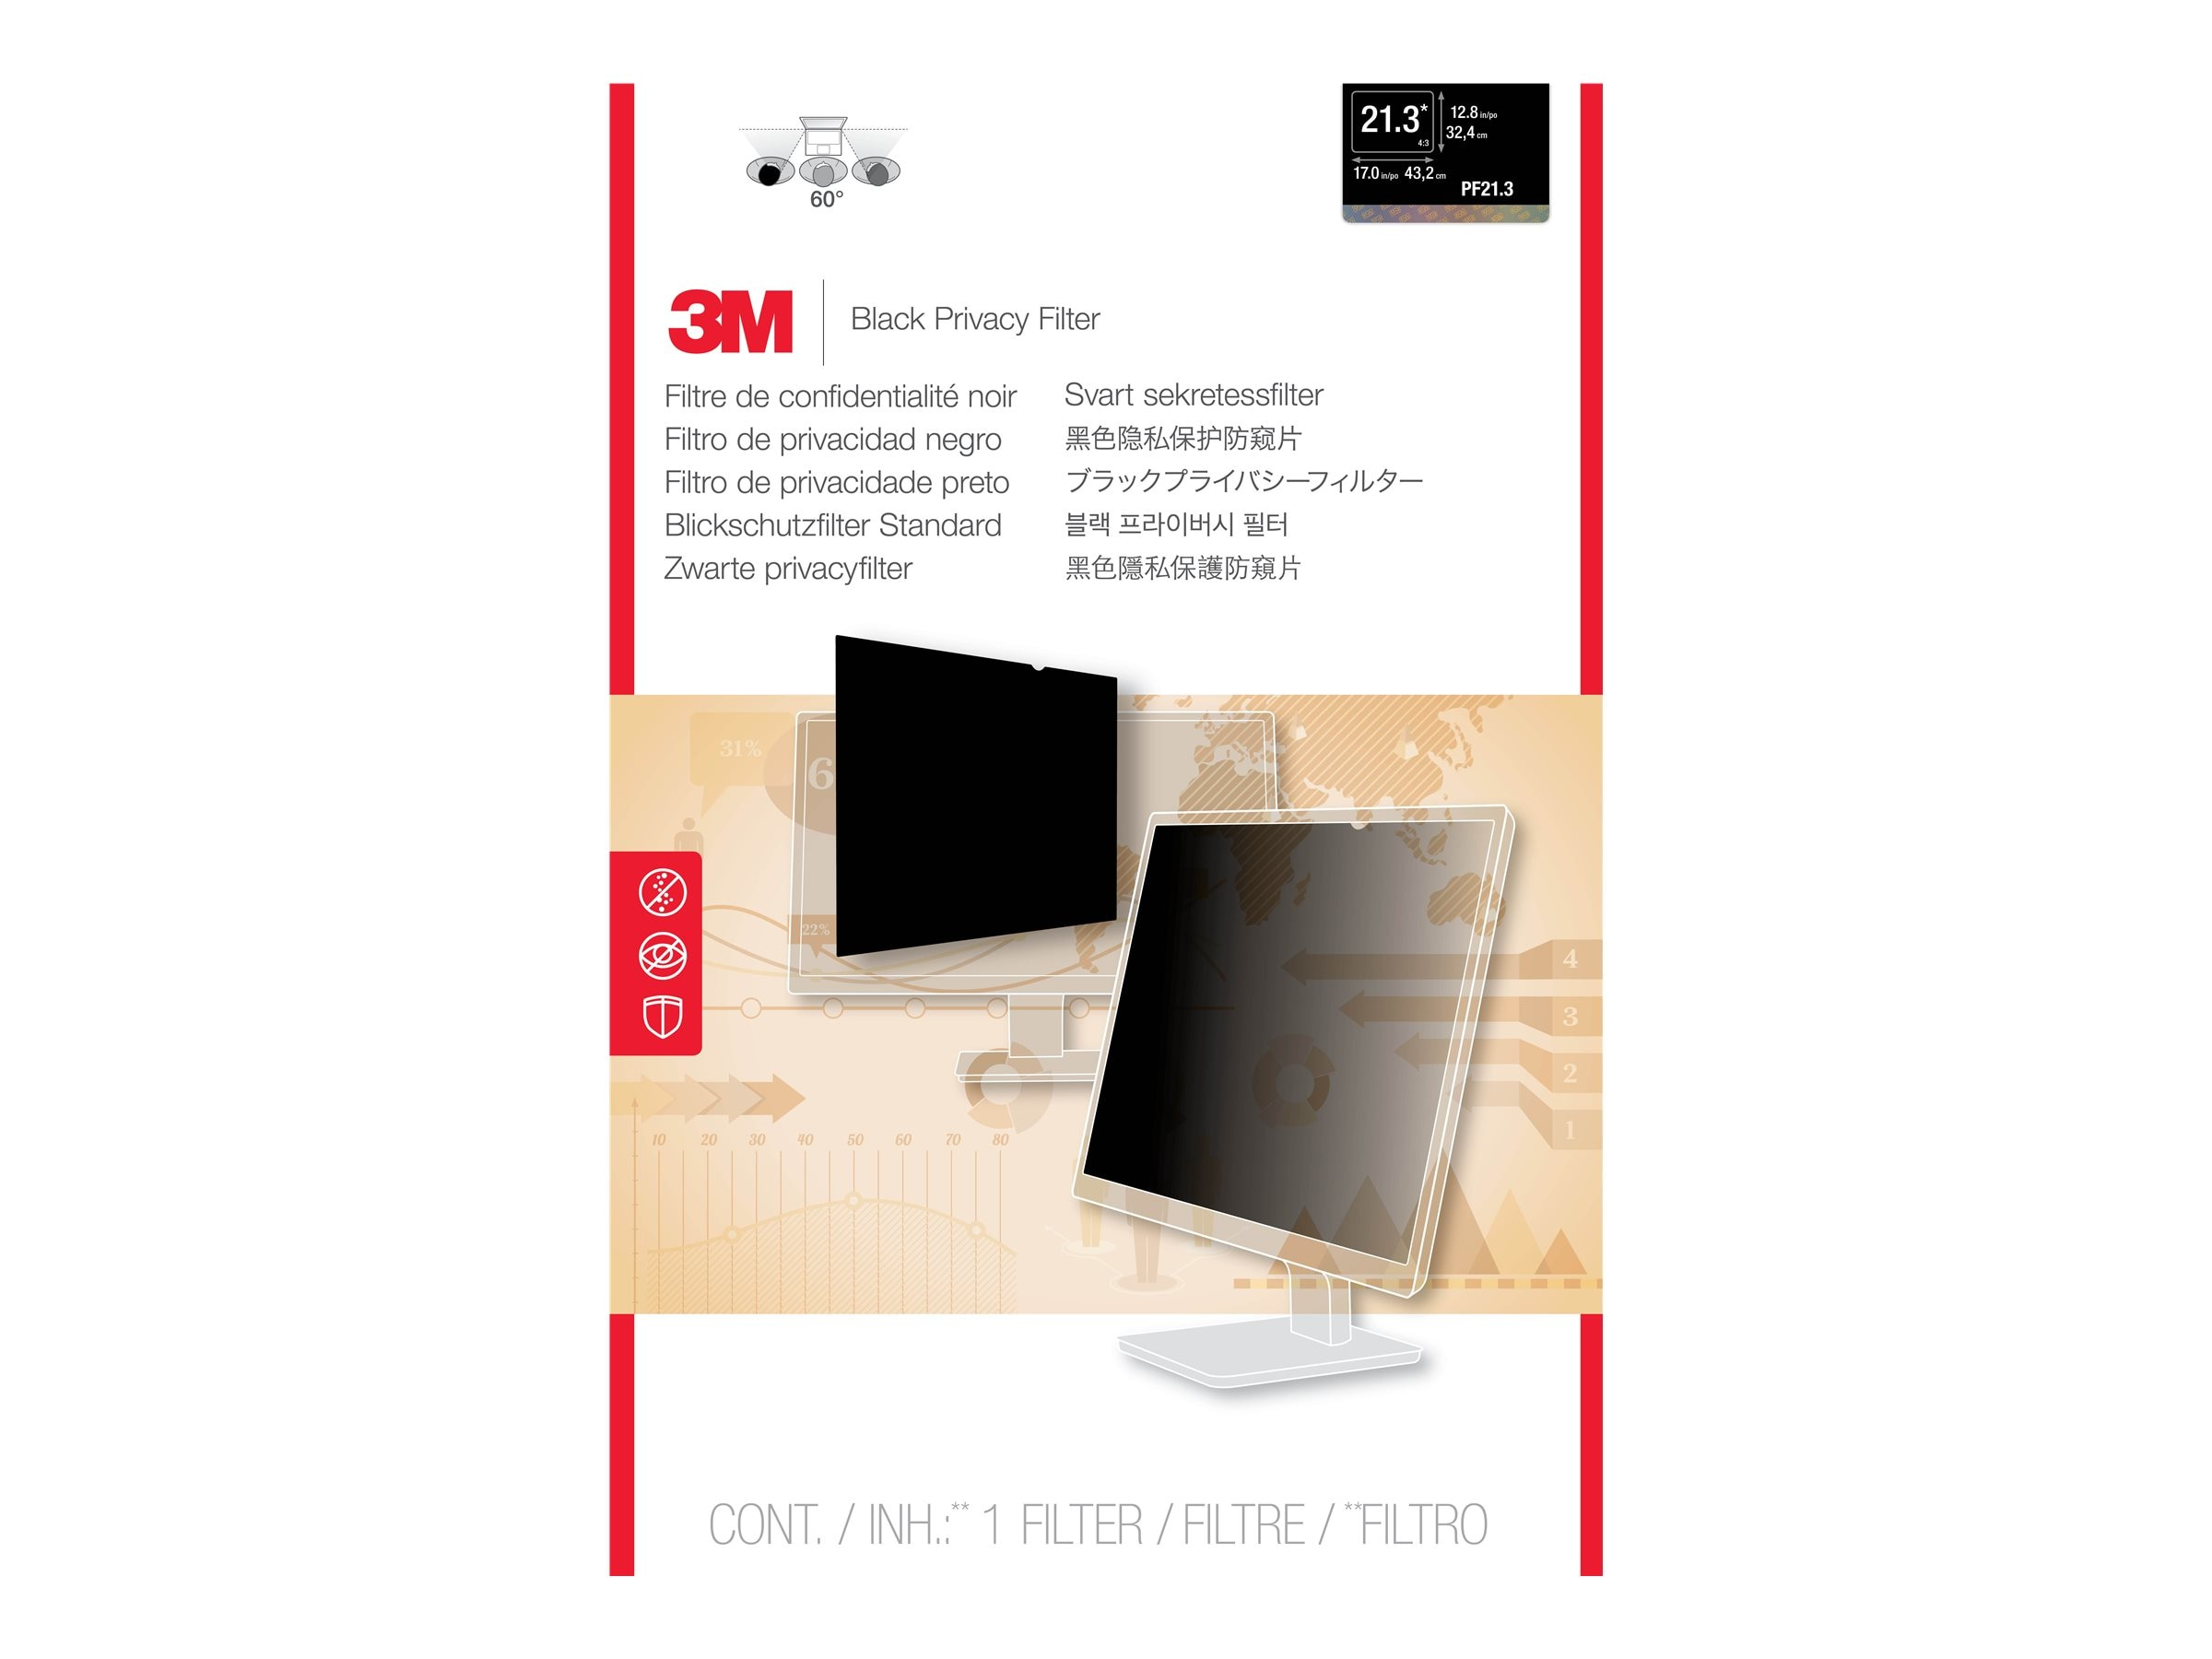 3M Privacy Filter for 21.3-inch LCD